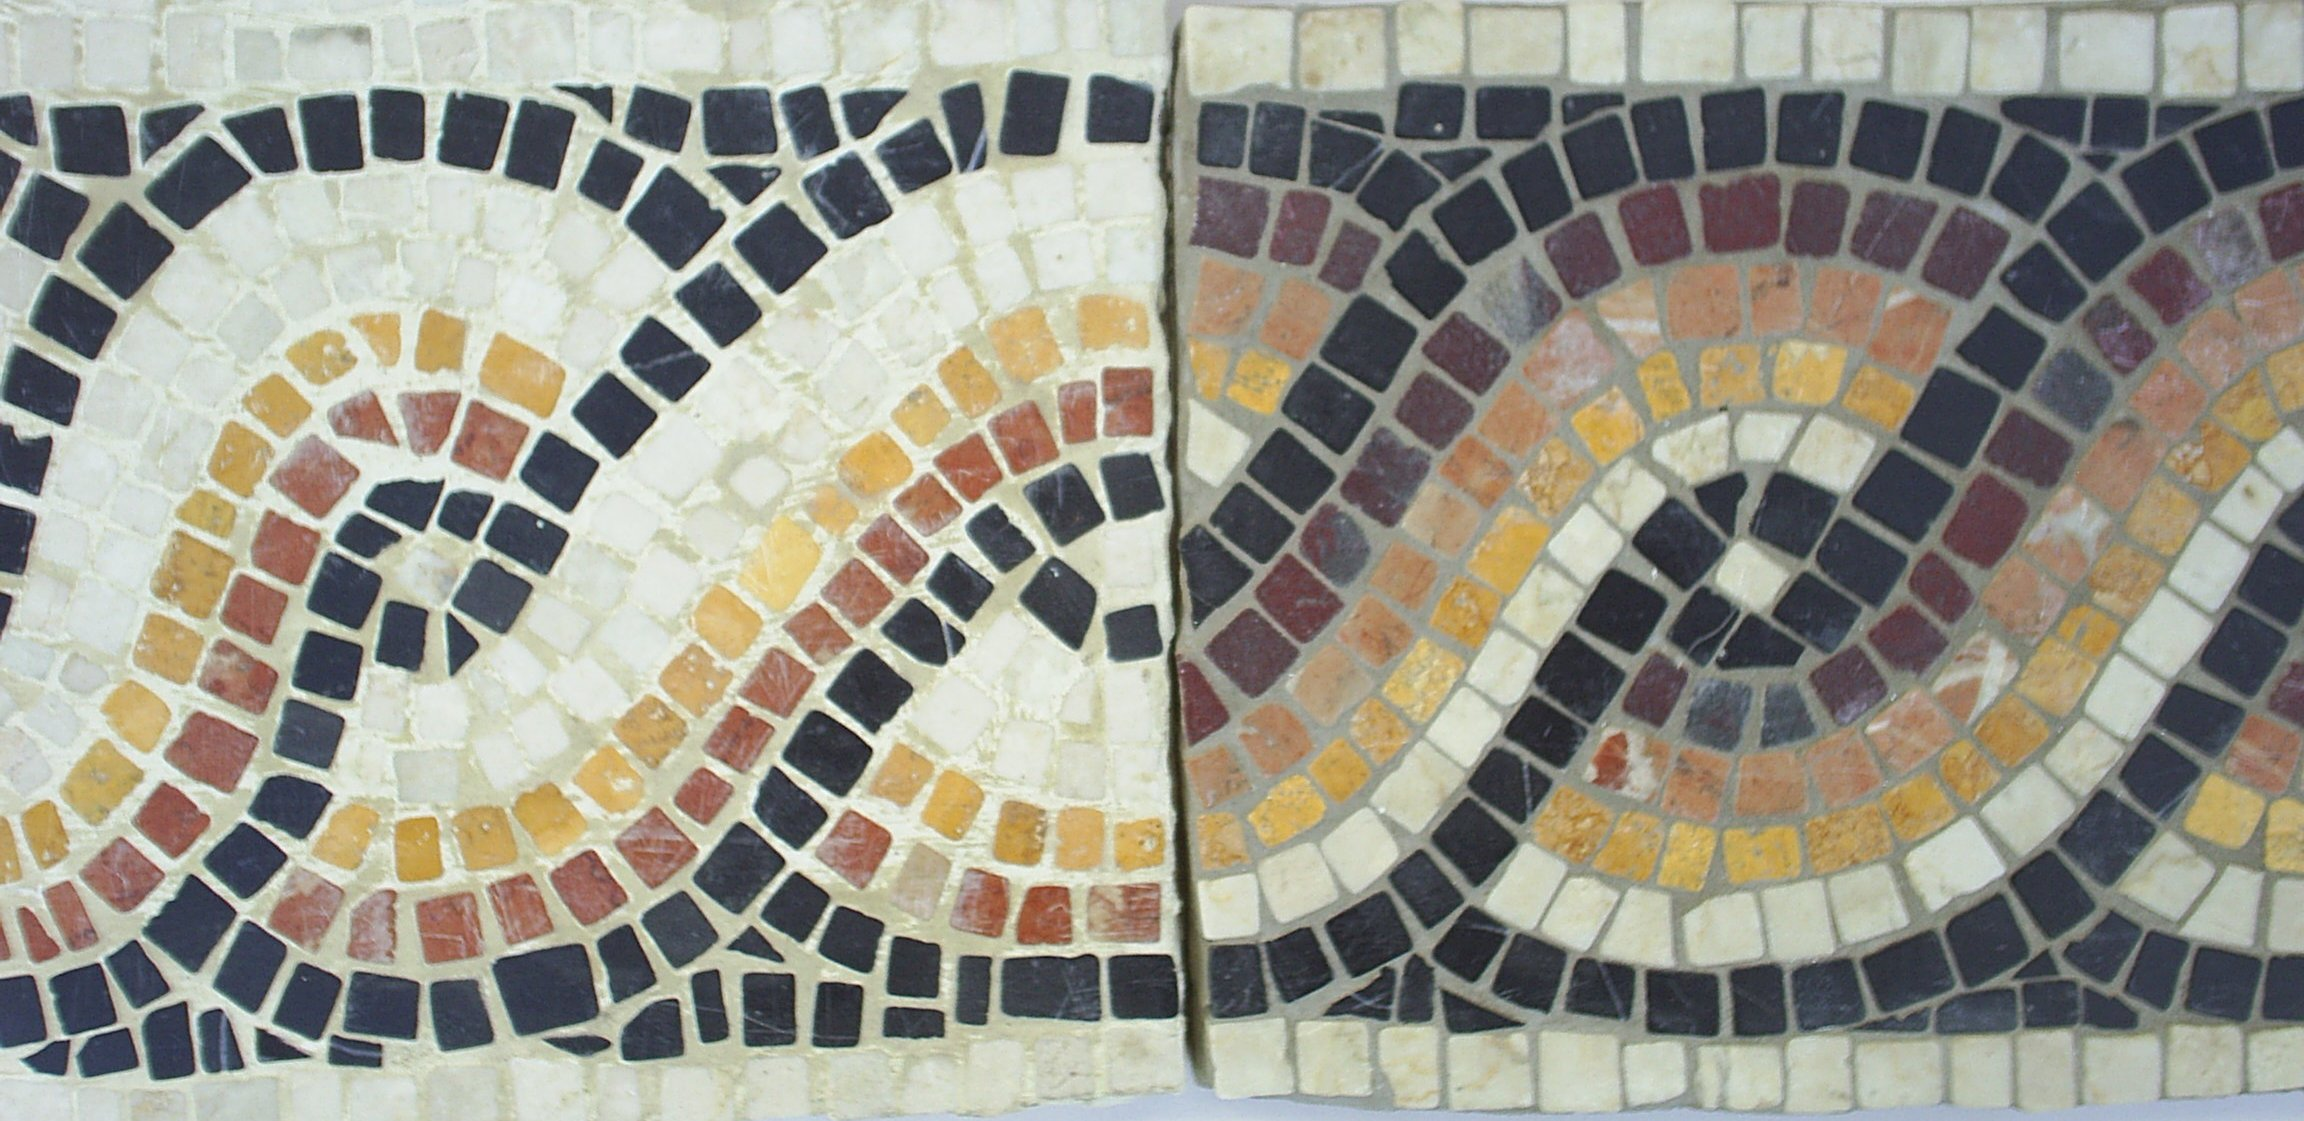 Grout Mosaic Tile Grout Romanmosaicist 39s Blog